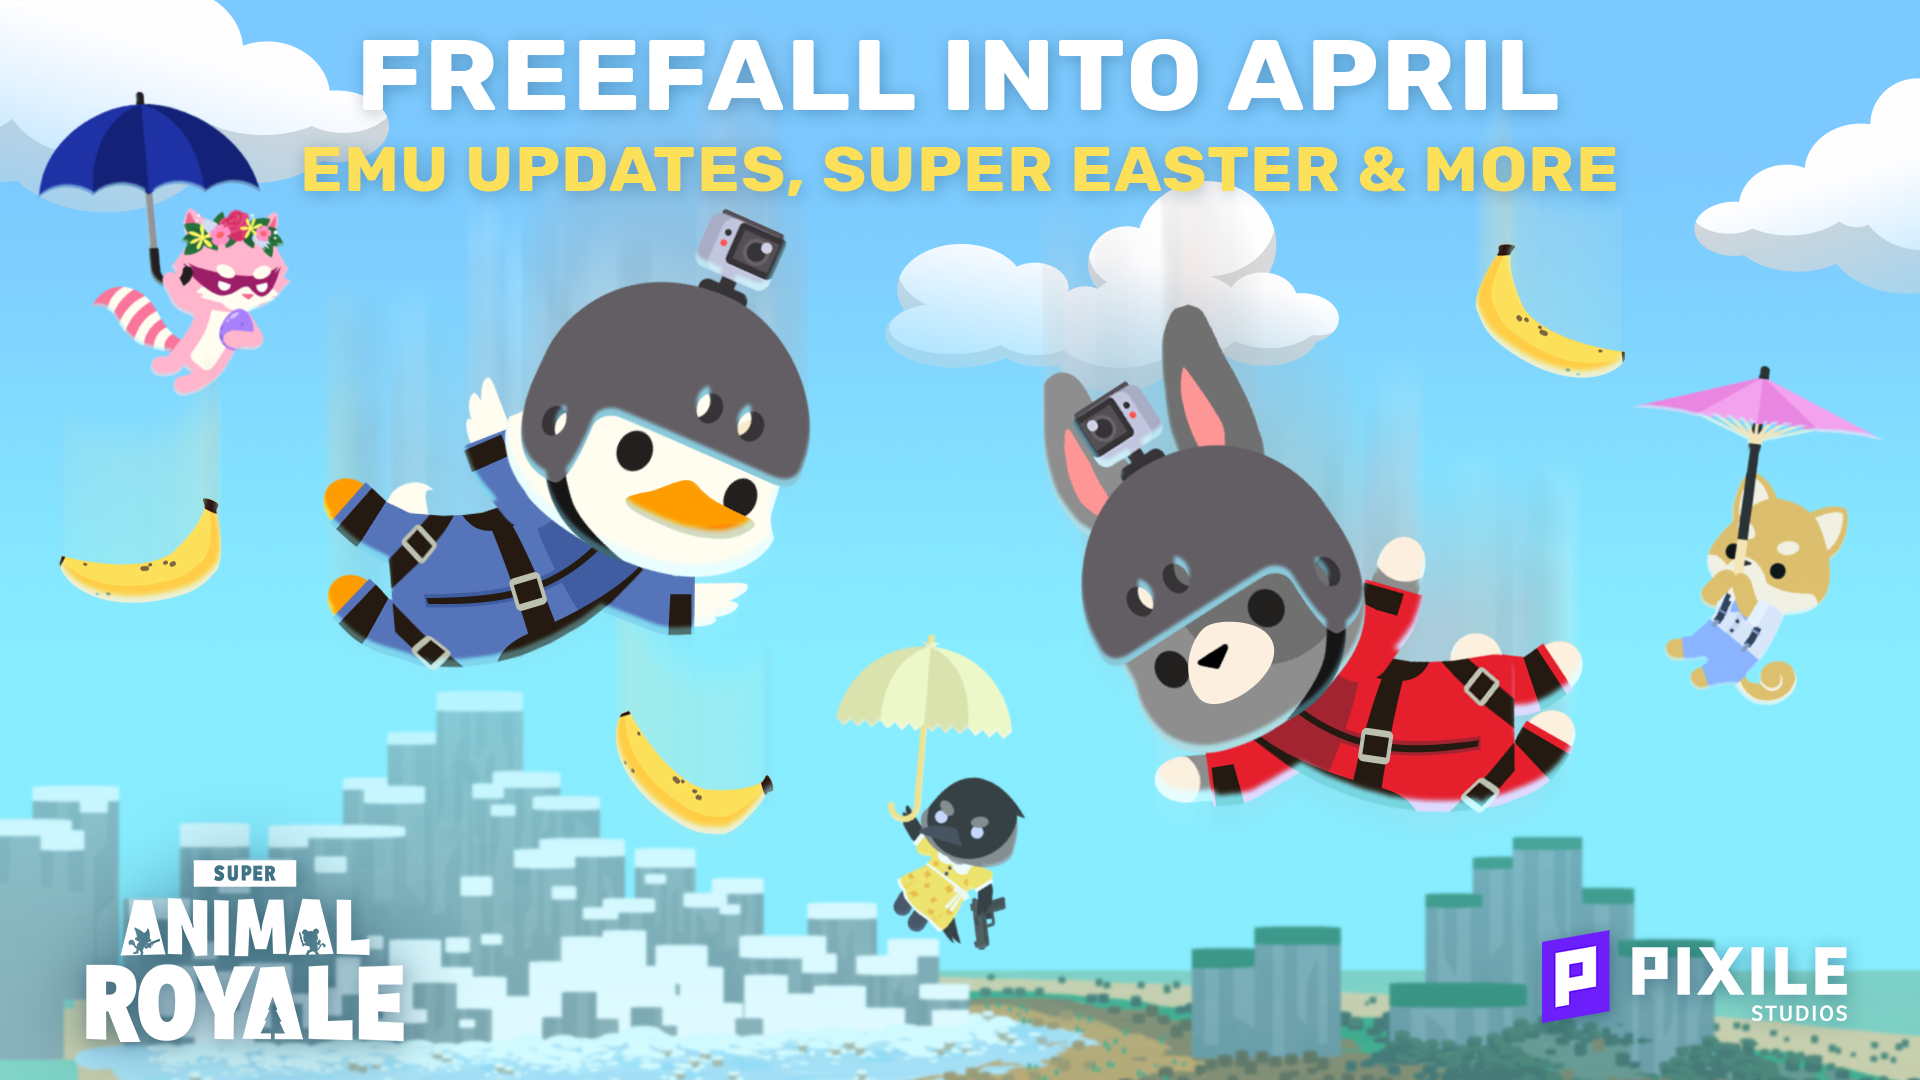 v0.93.1: Freefall into Super Easter